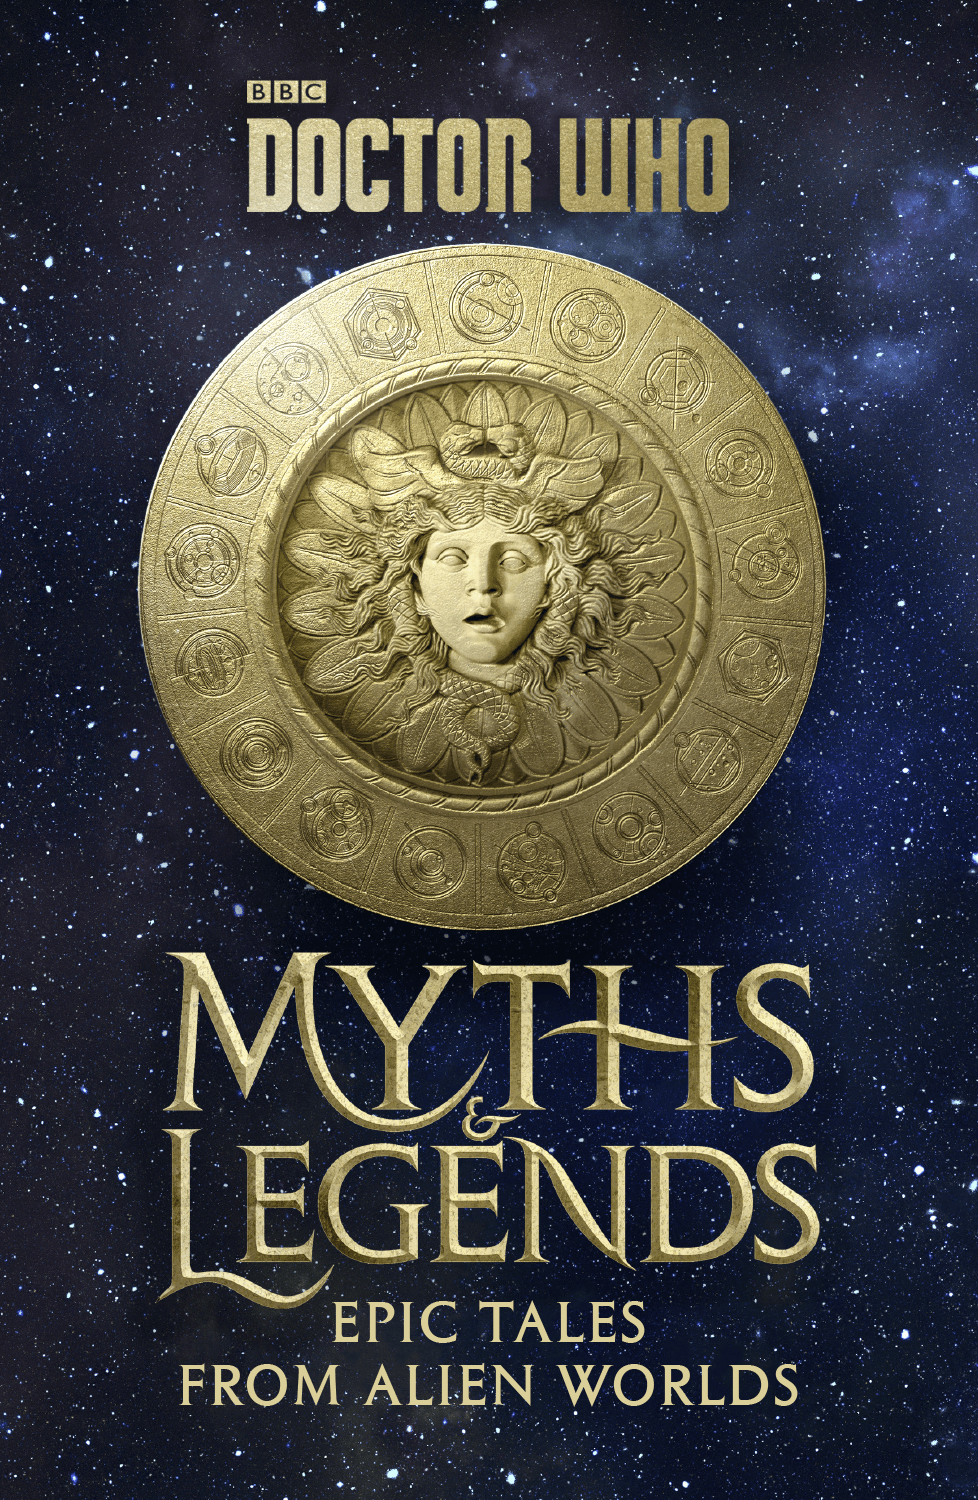 https://sciencefictionbulletin.files.wordpress.com/2017/06/myths-and-legends.png